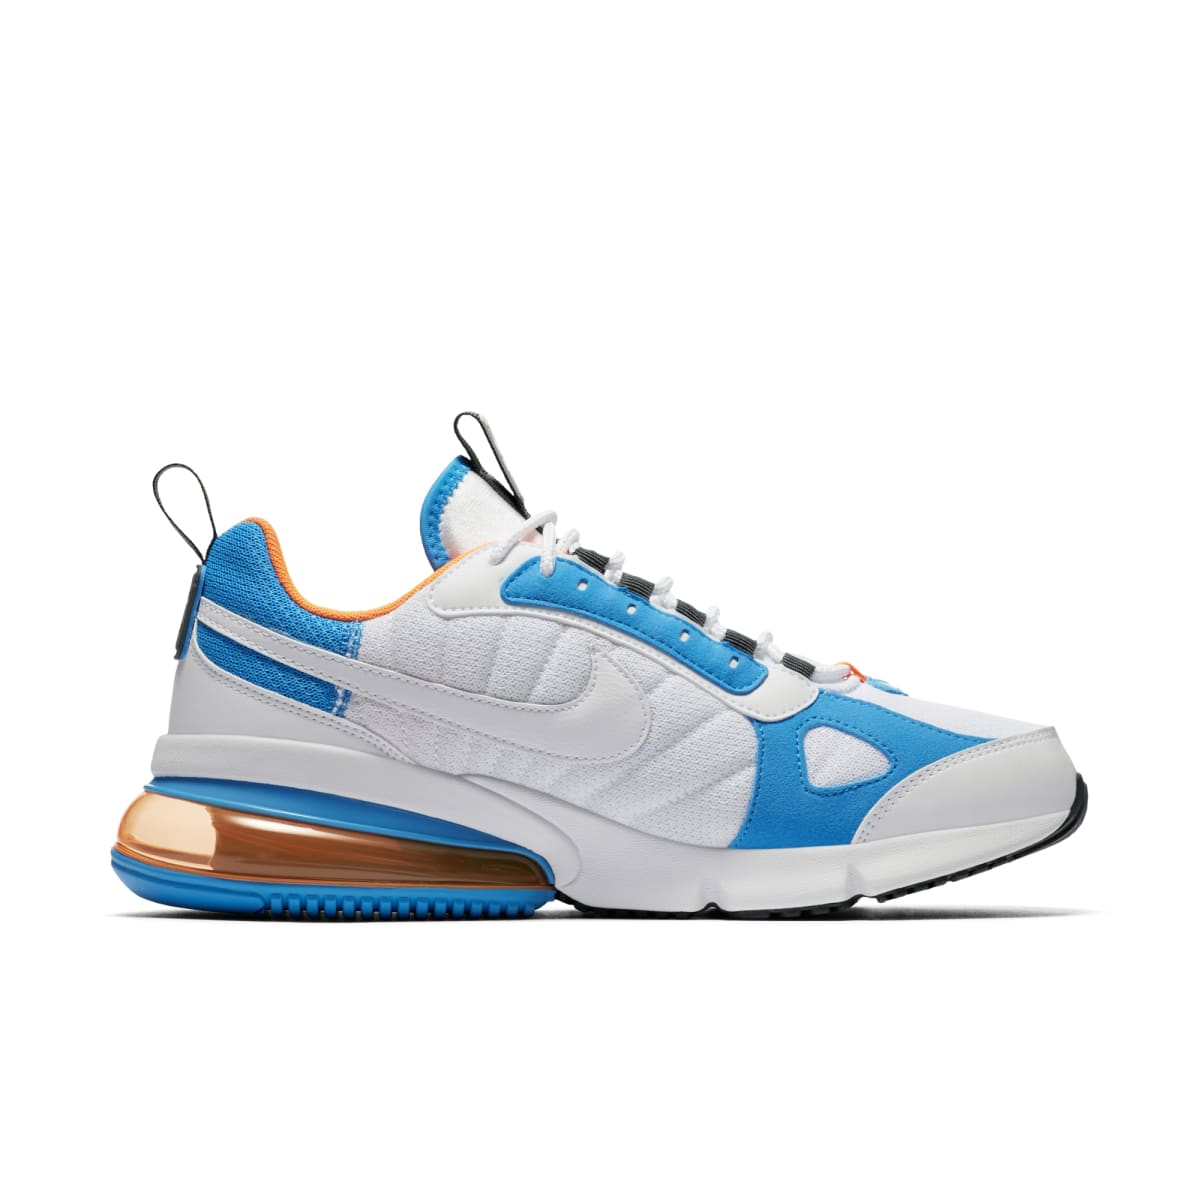 Nike Air Max 270 Futura White Total Orange Blue Heron Nike